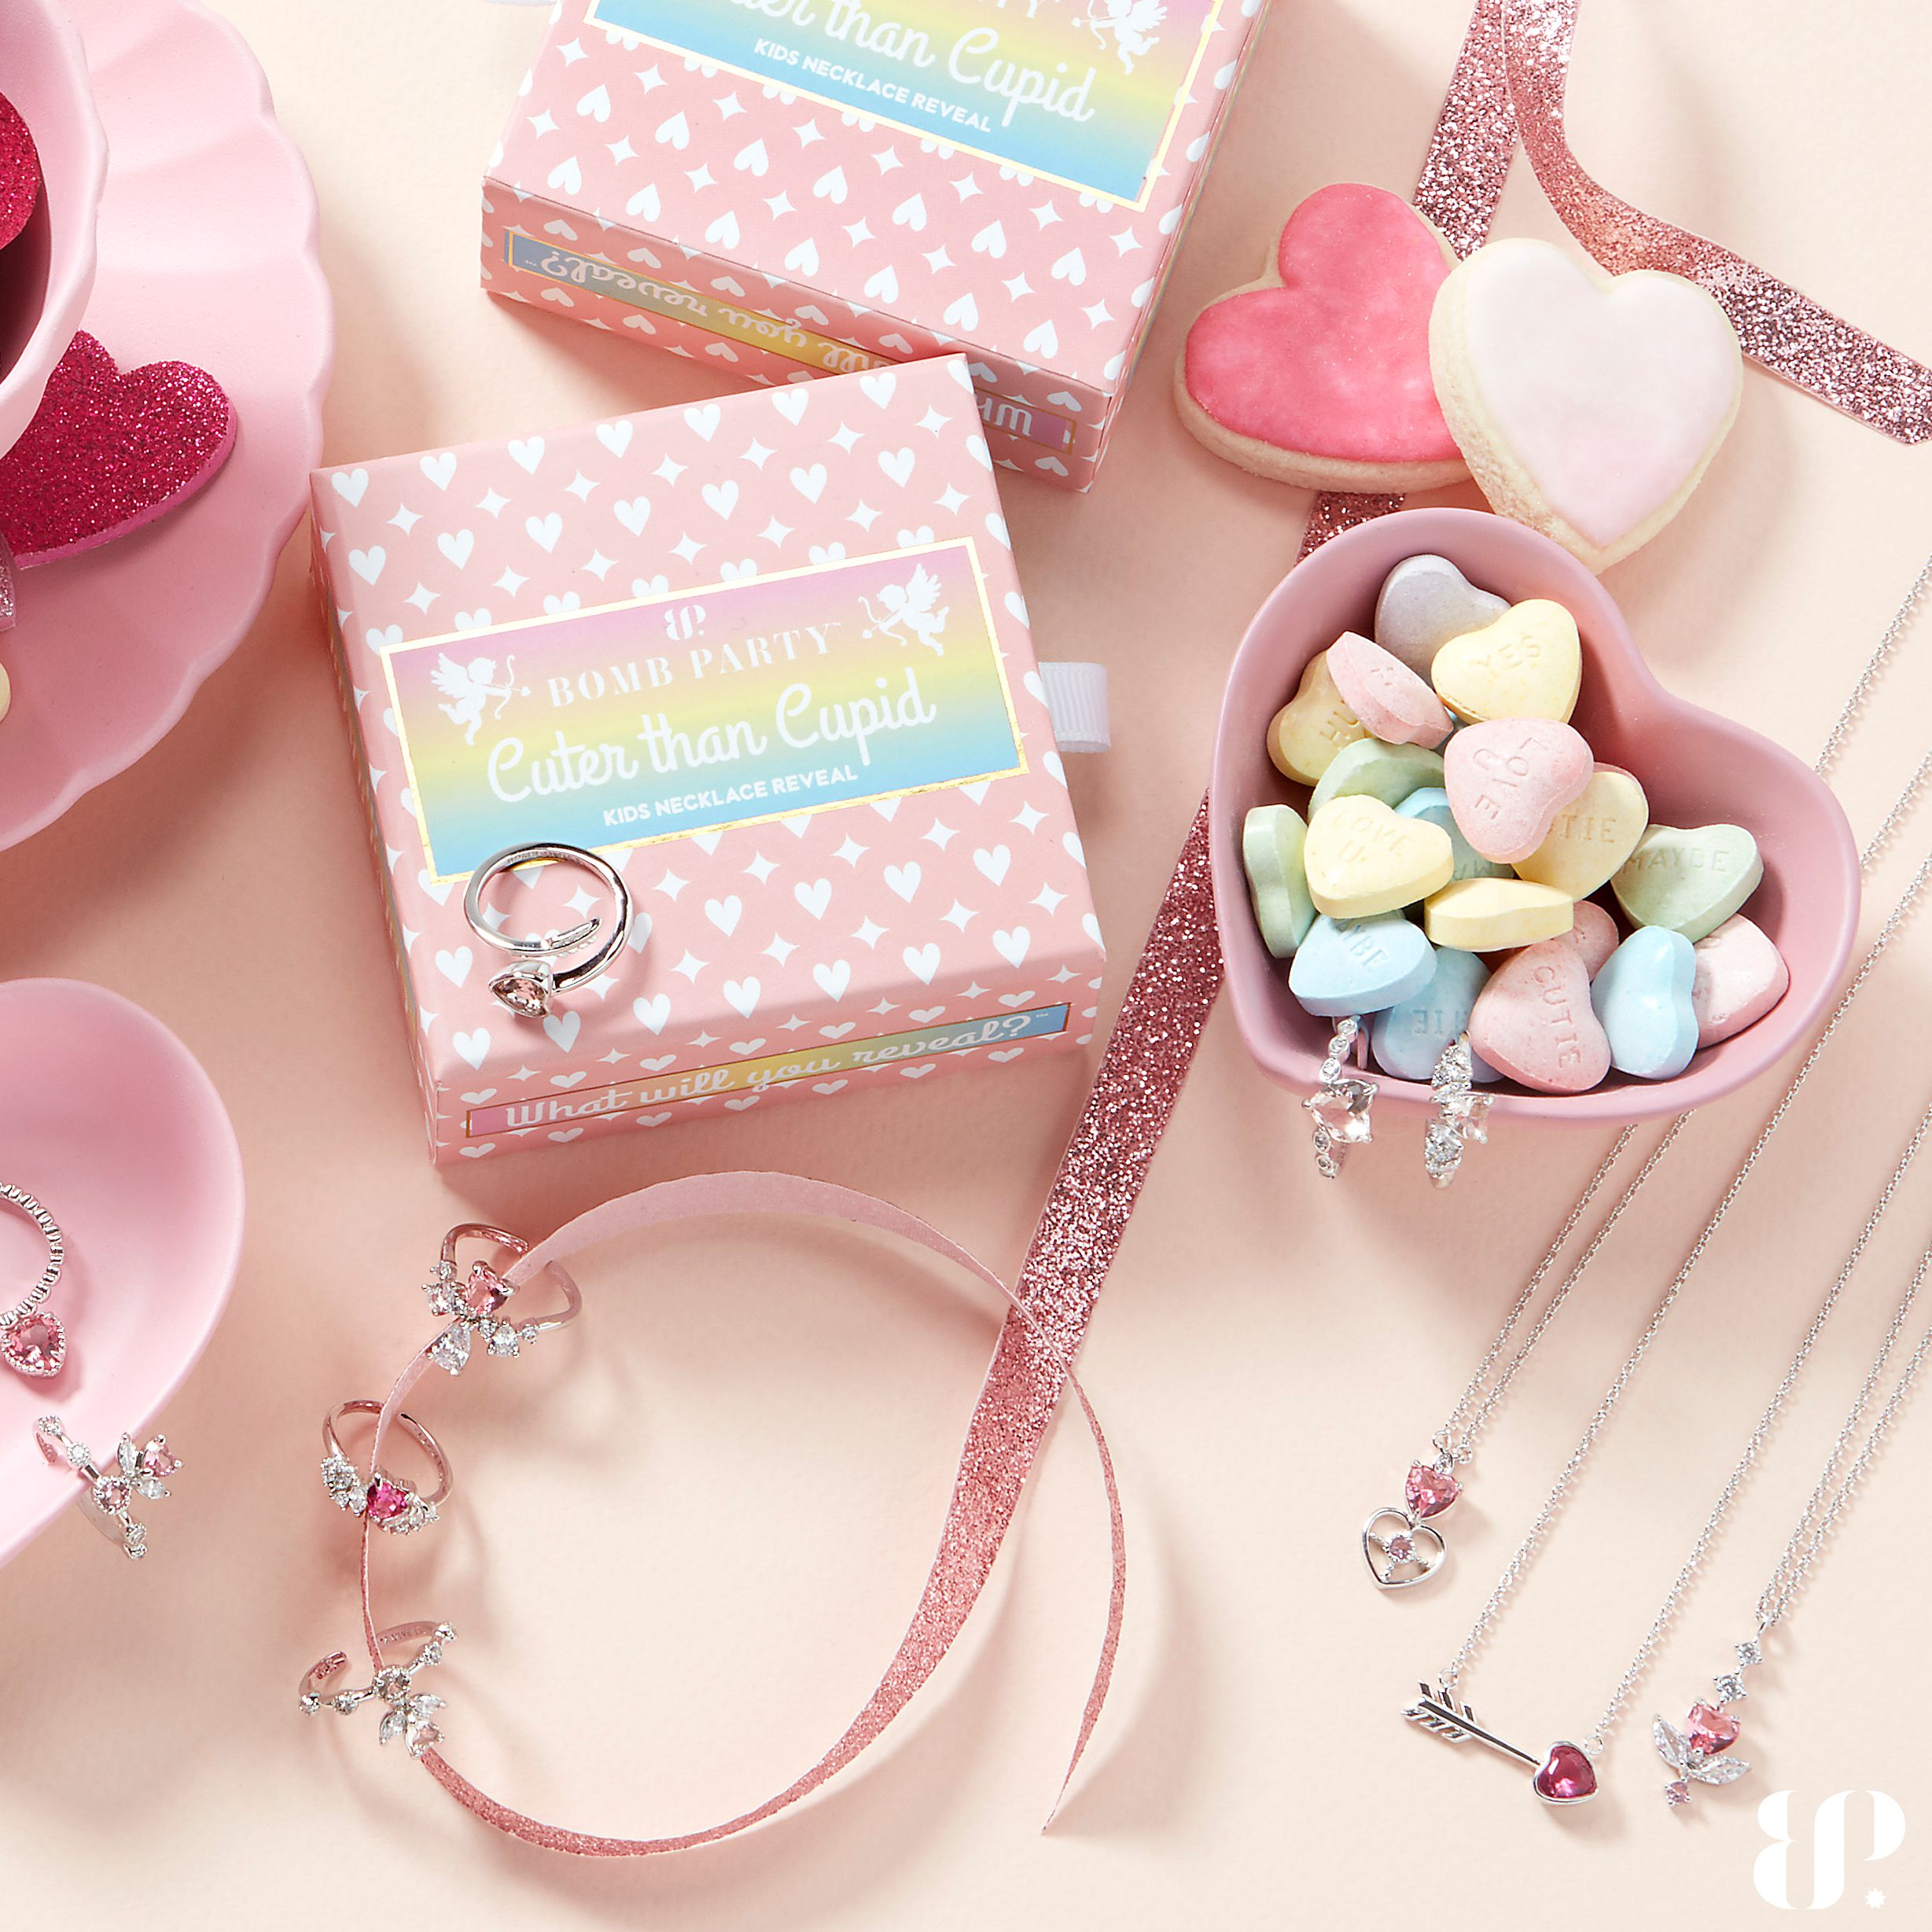 Image for Cuter than Cupid Collection